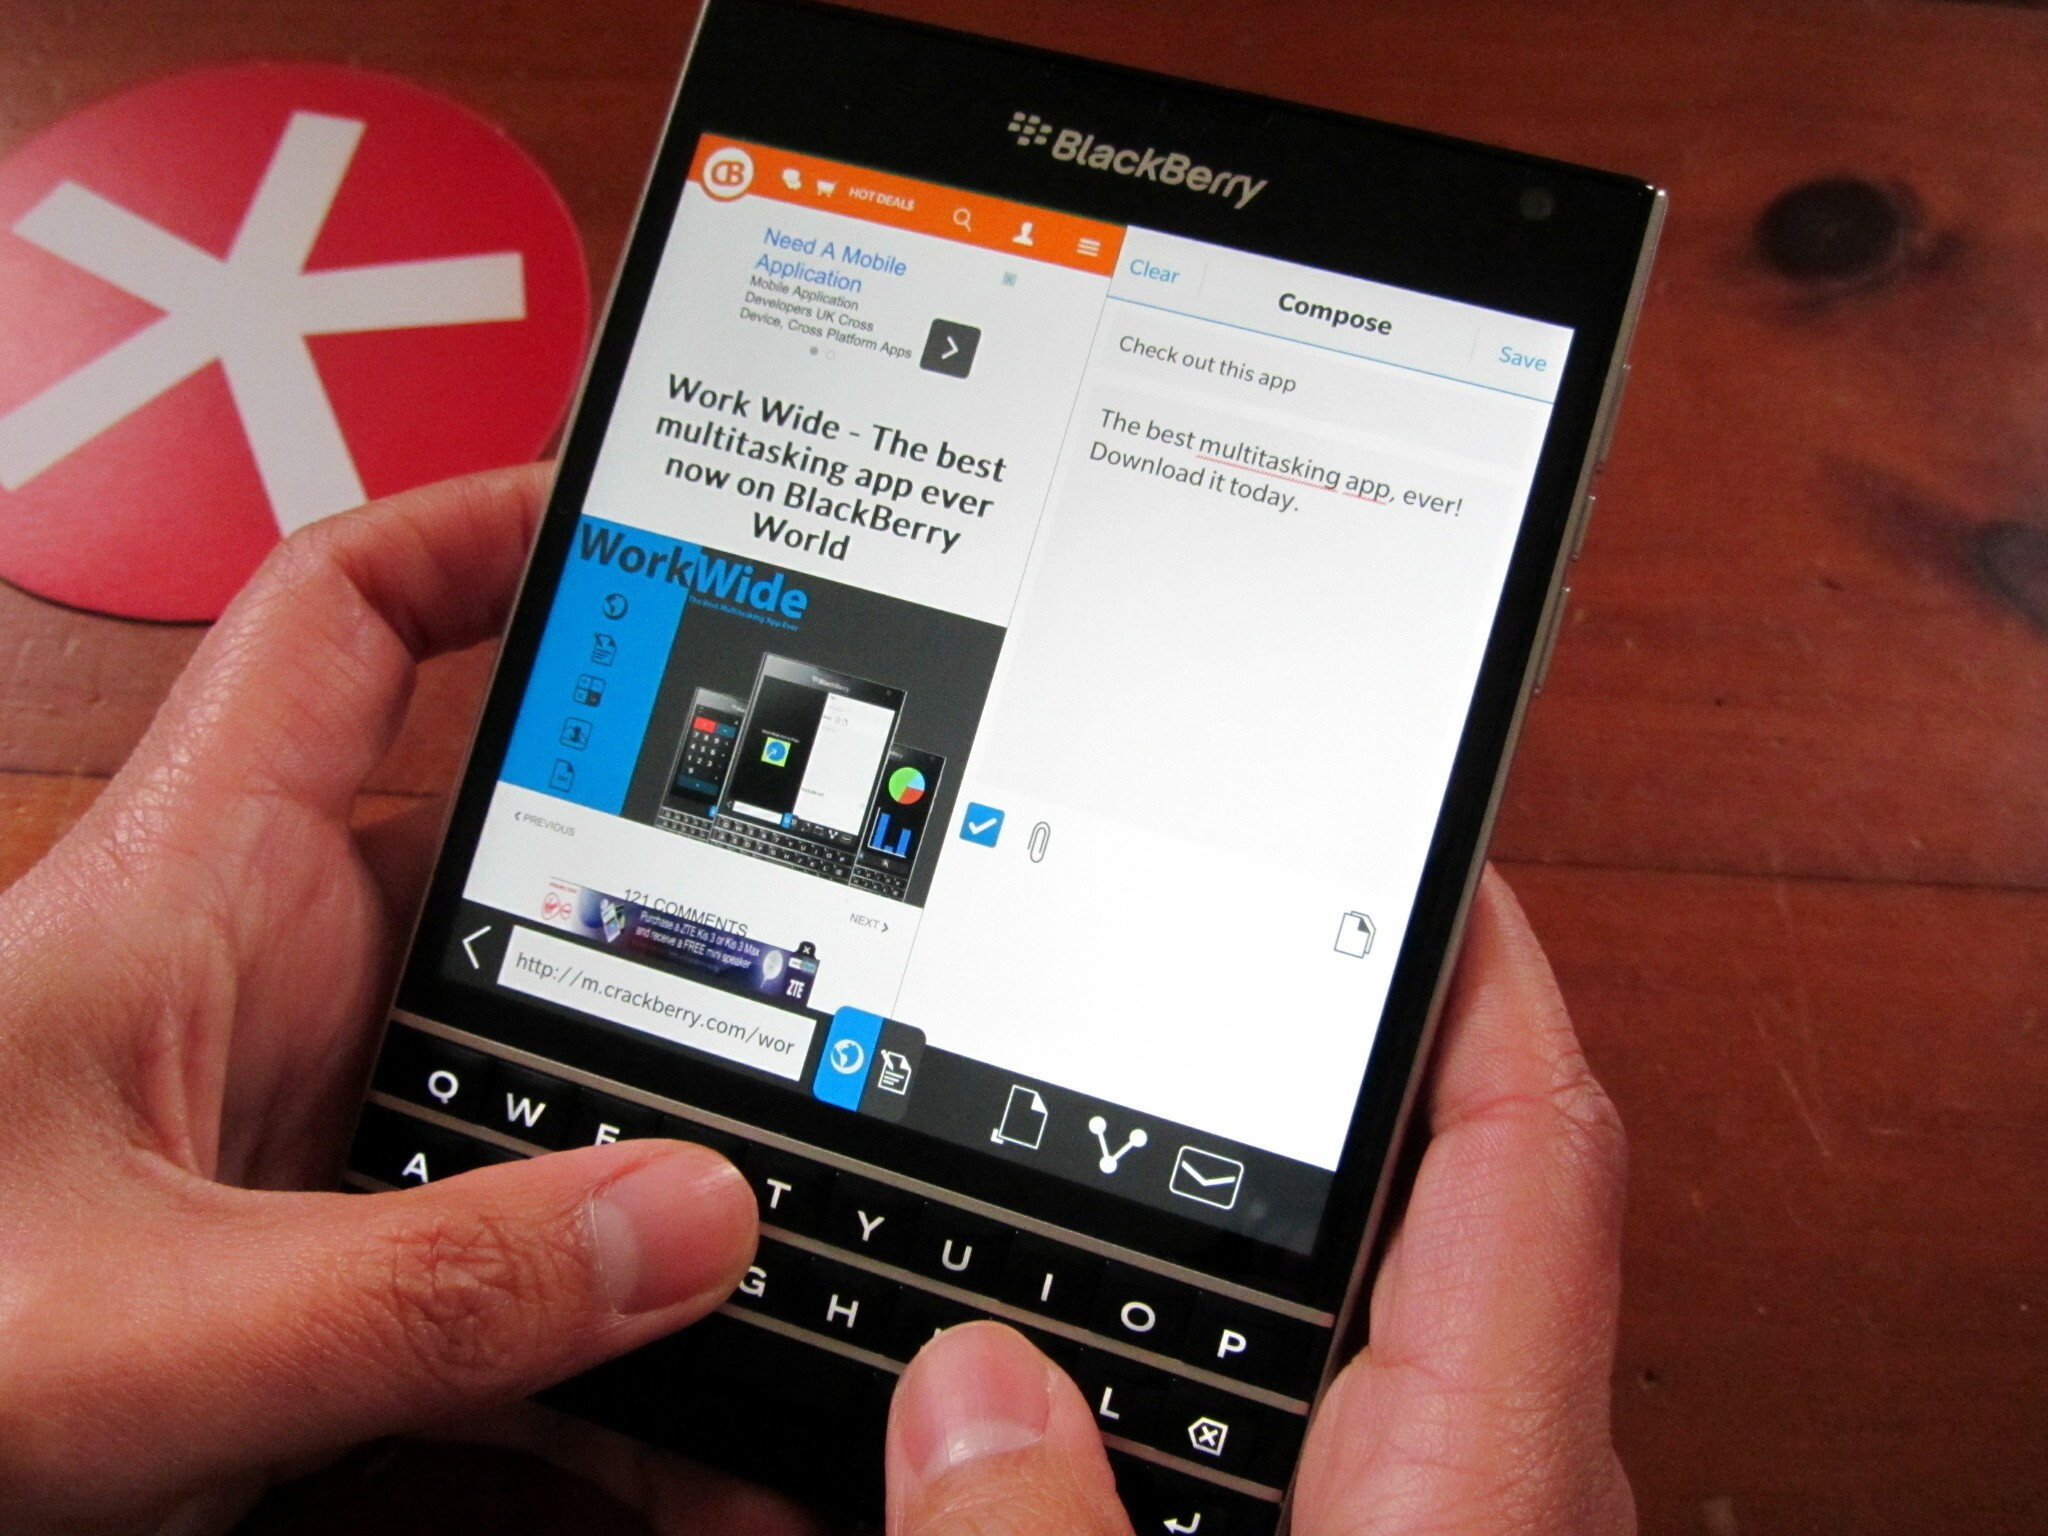 Increase your productivity with Work Wide for the BlackBerry Passport